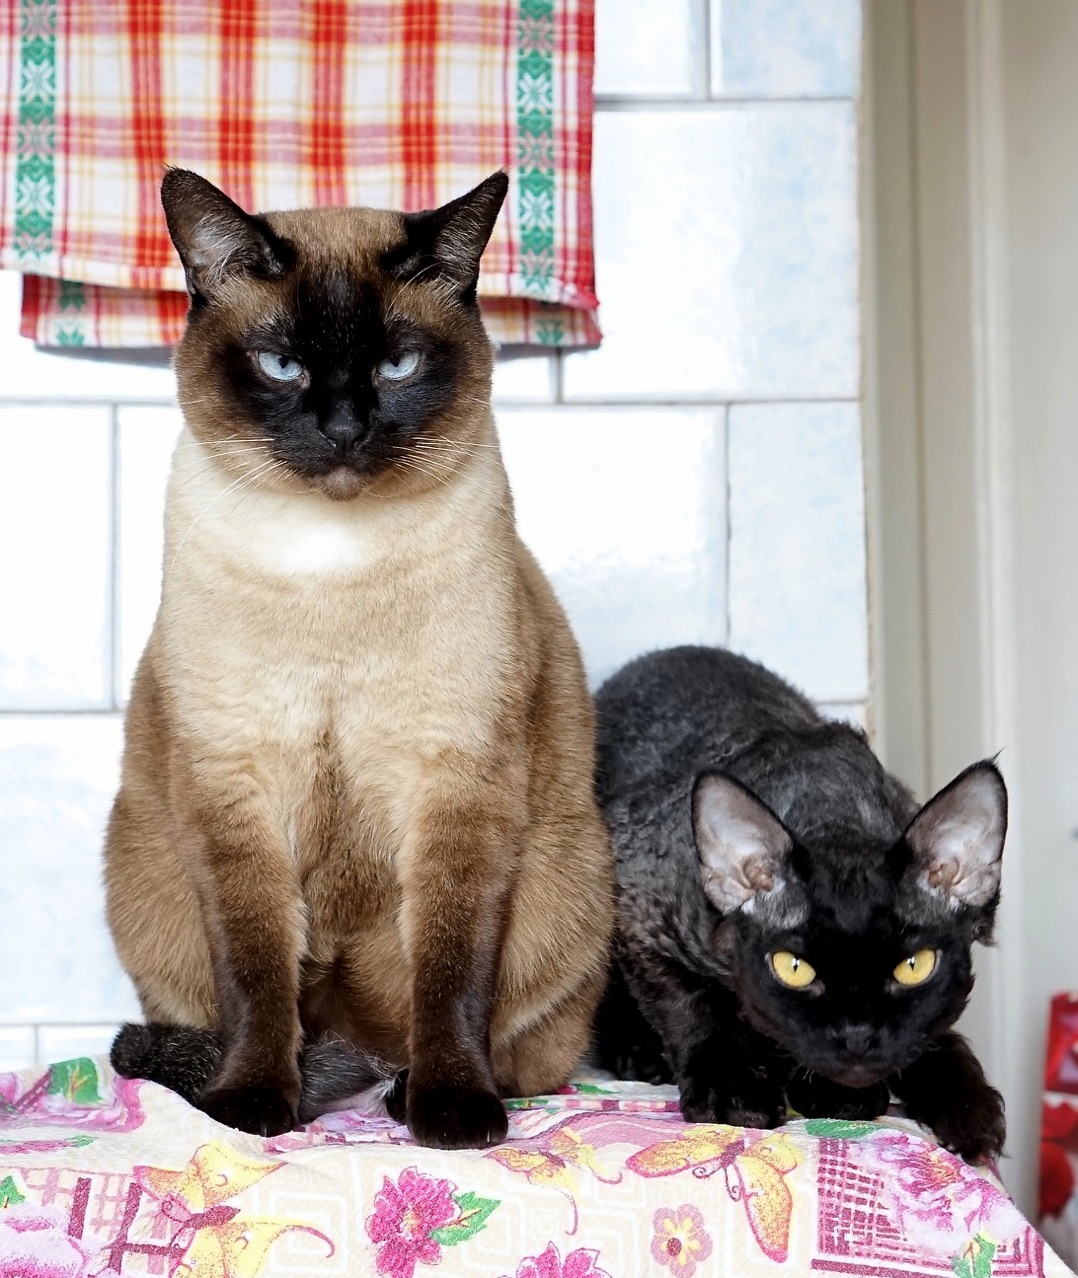 Gloomy and tricky cats – amper and volt